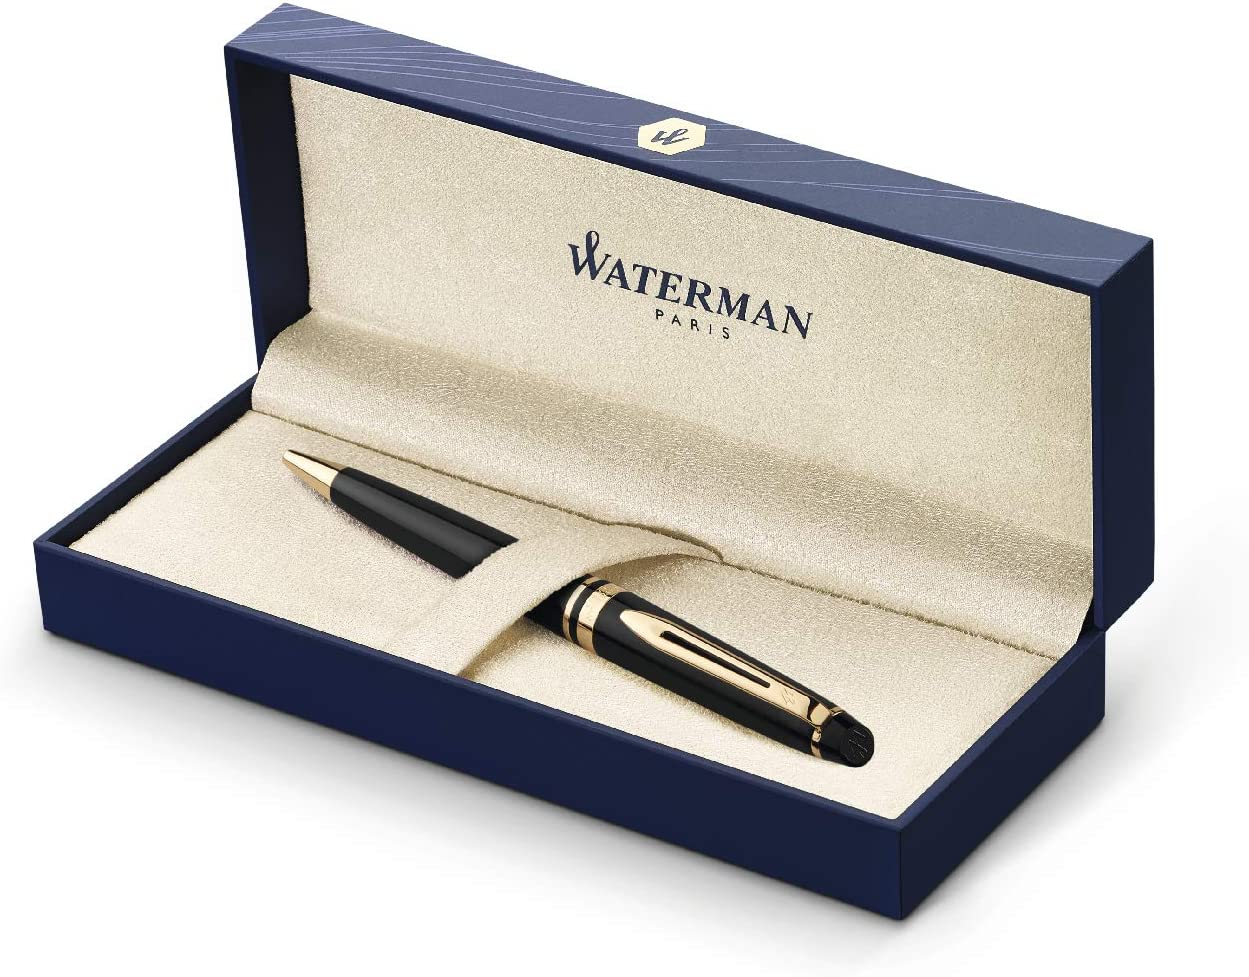 Waterman Ballpoint Pen with case